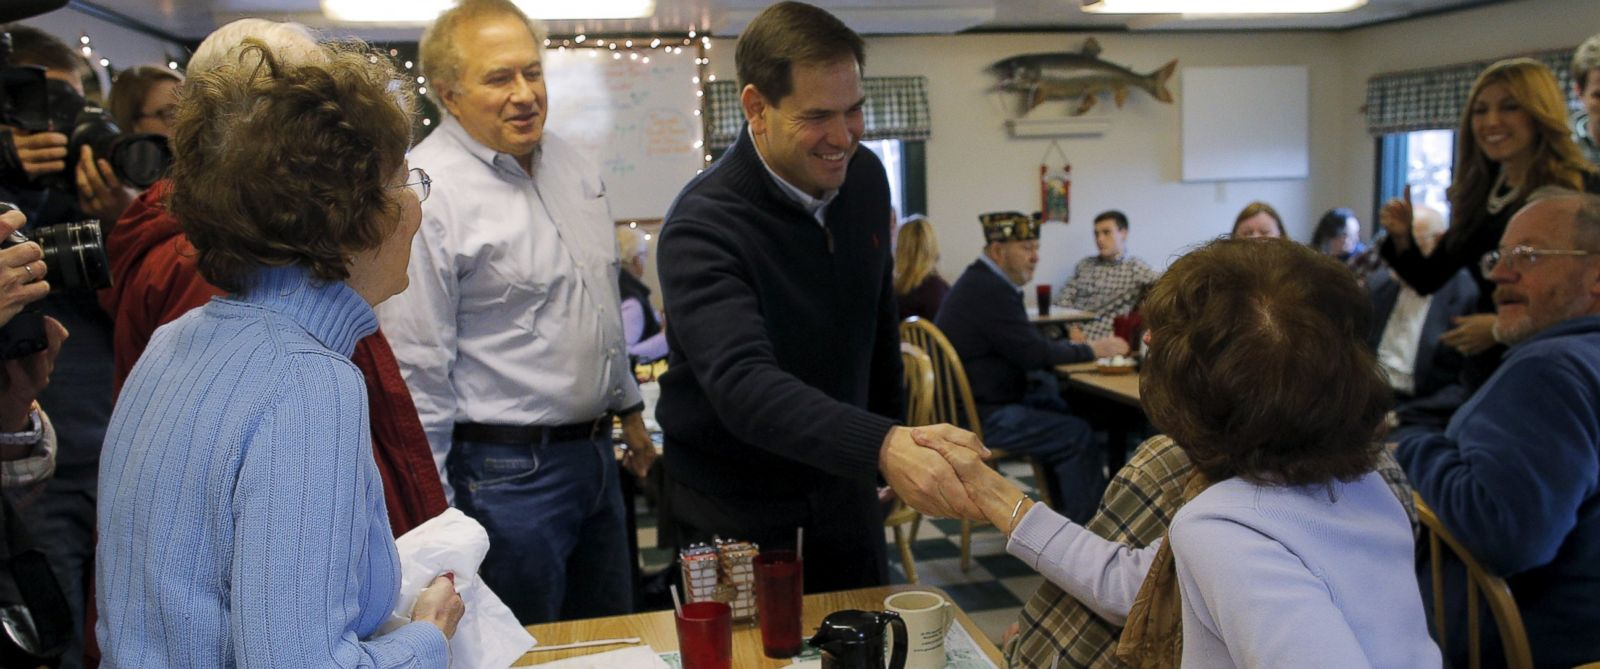 PHOTO:In this file photo, Marco Rubio greets diners at Georges Diner in Meredith, N.H., Dec. 21, 2015.